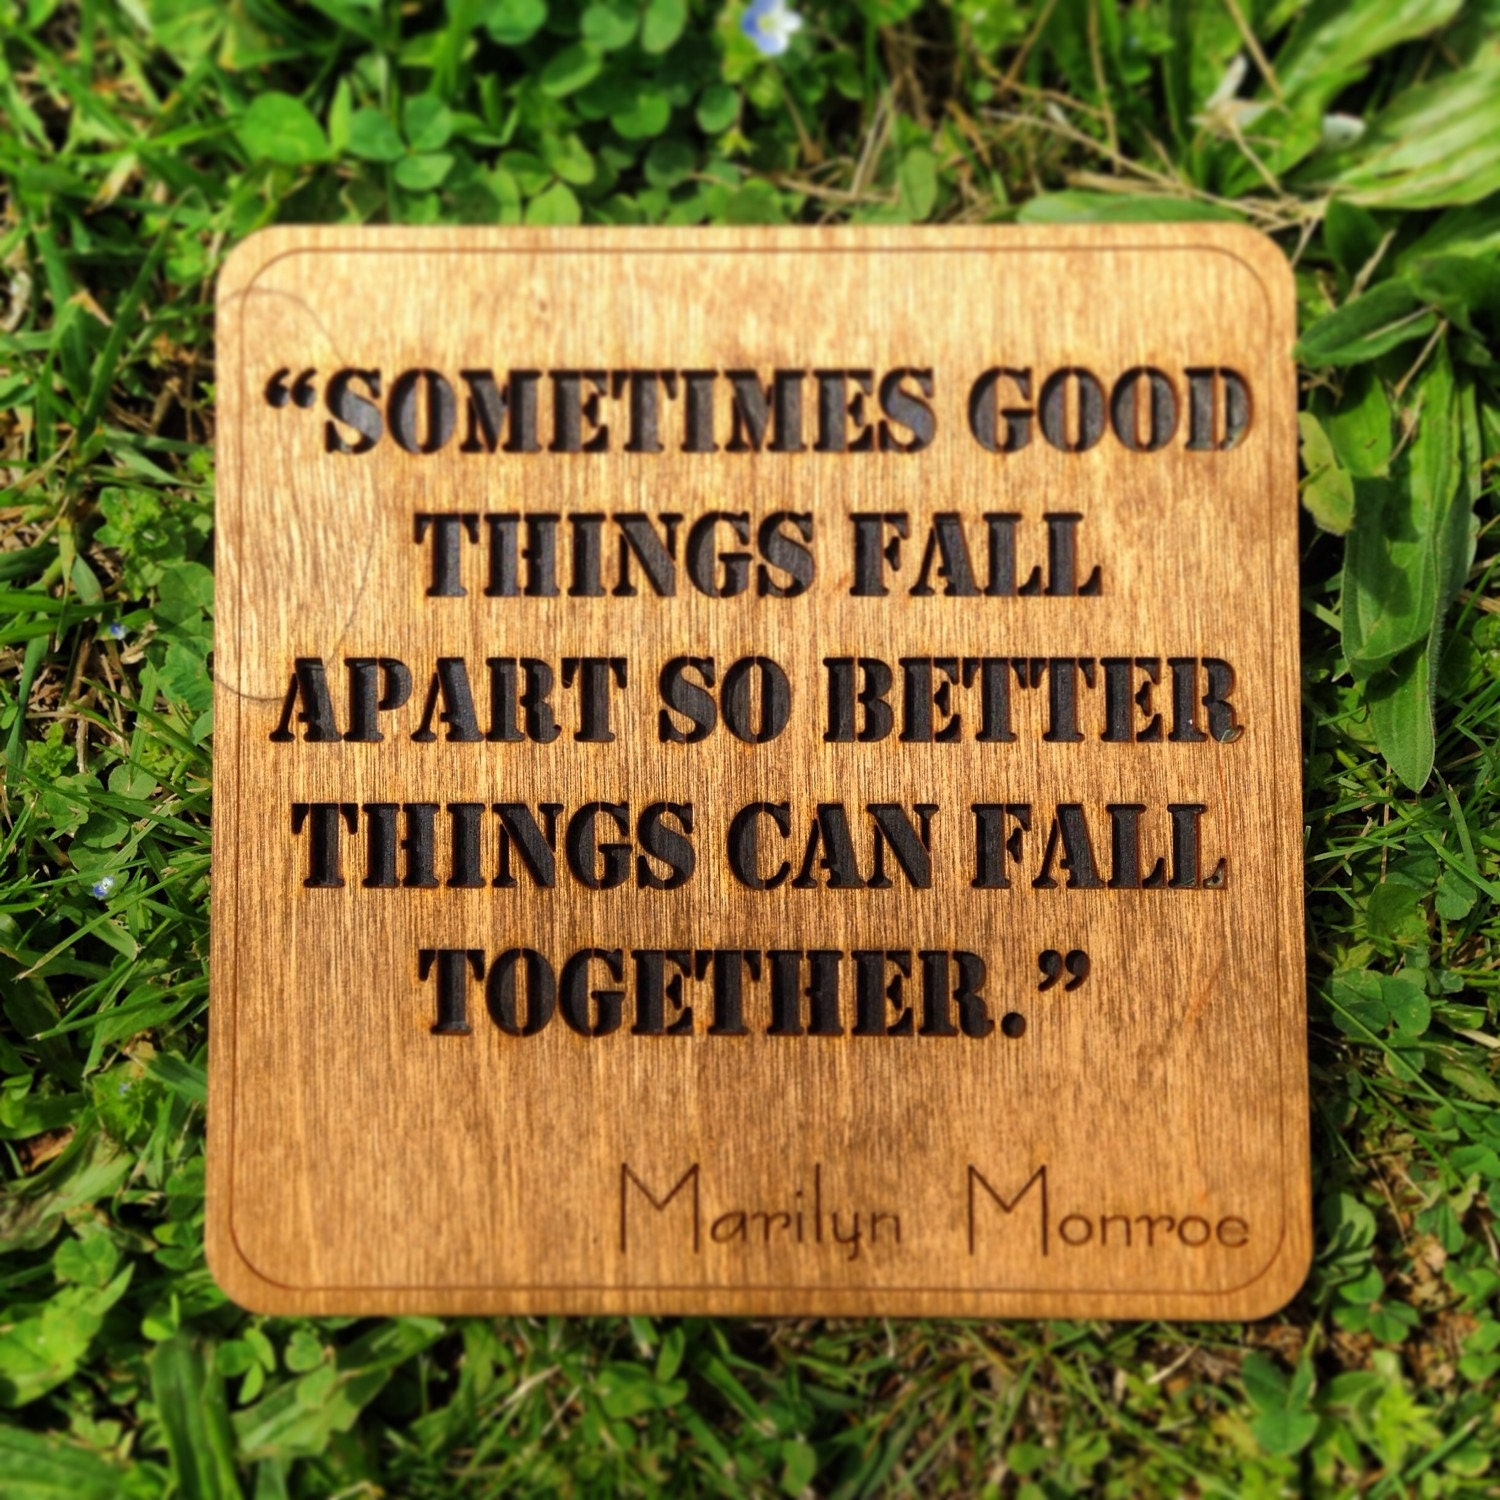 Marilyn Monroe Quotes Better Things Can Fall Together: Marilyn Monroe Quote Wall Art